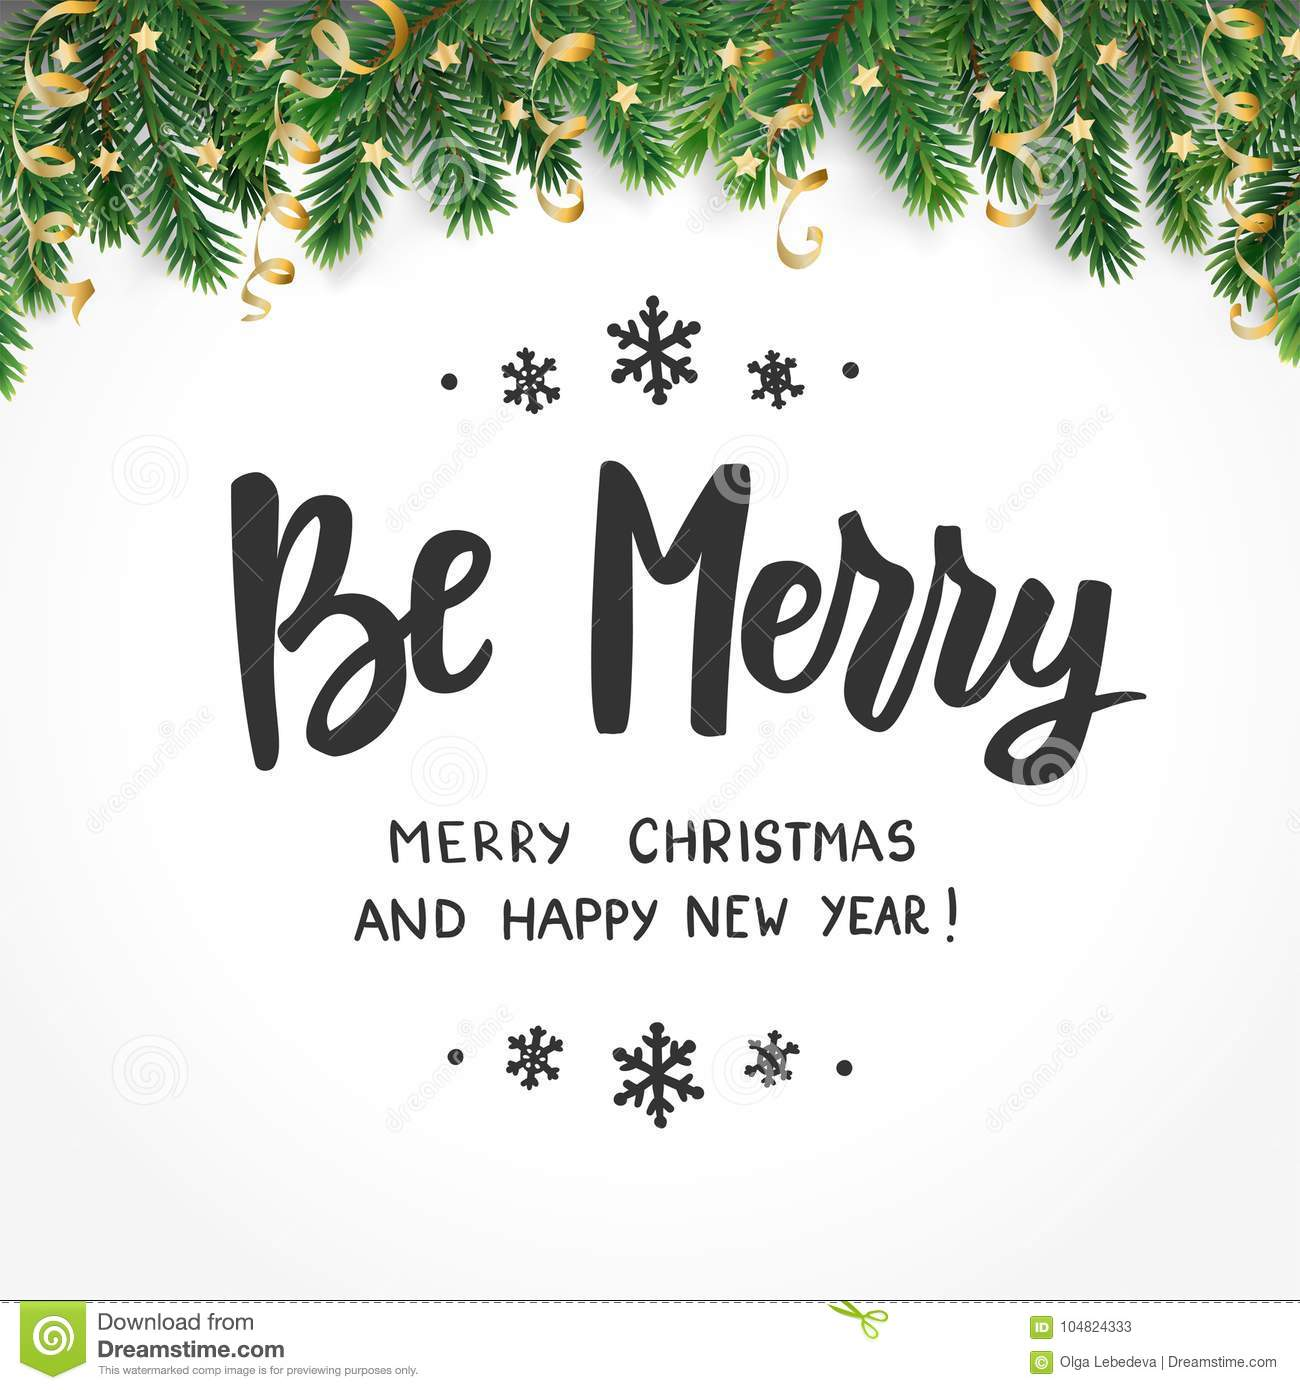 Be merry happy new year and merry christmas text holiday greetings download be merry happy new year and merry christmas text holiday greetings quote m4hsunfo